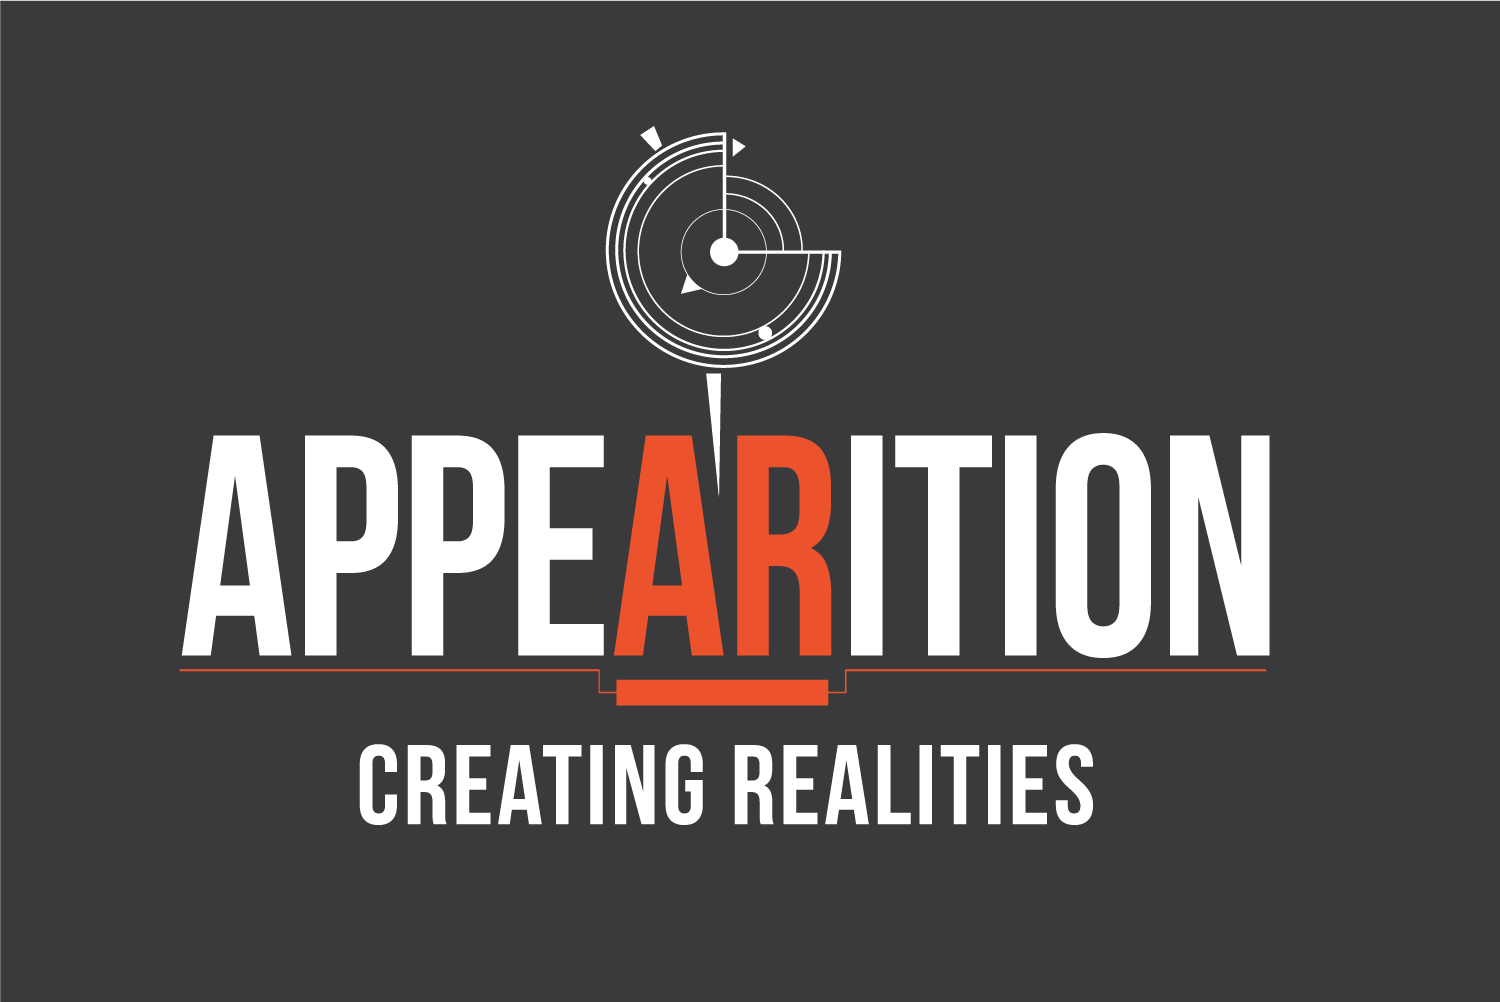 Appearition